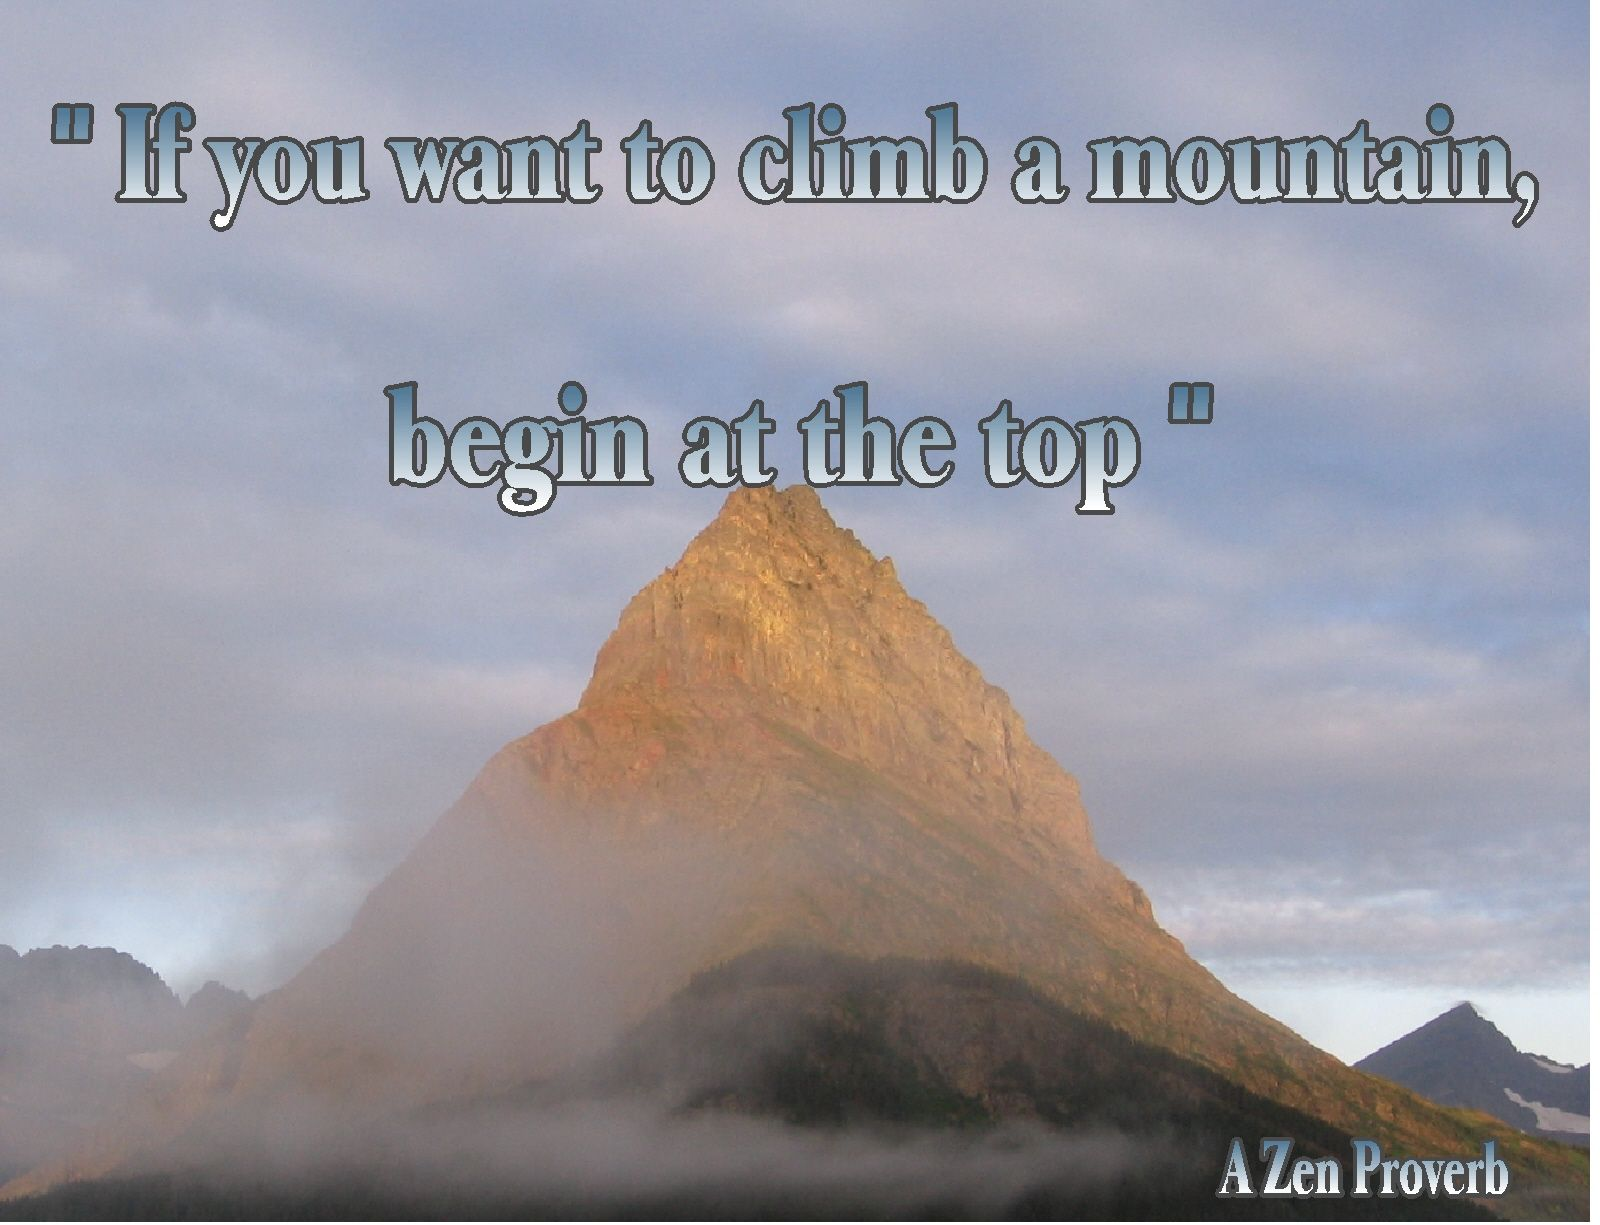 If You Want To Climb A Mountain Begin At The Top A Zen Saying Ideas And Materials For Setting Motivation Zen Quotes Zen Witty Quotes